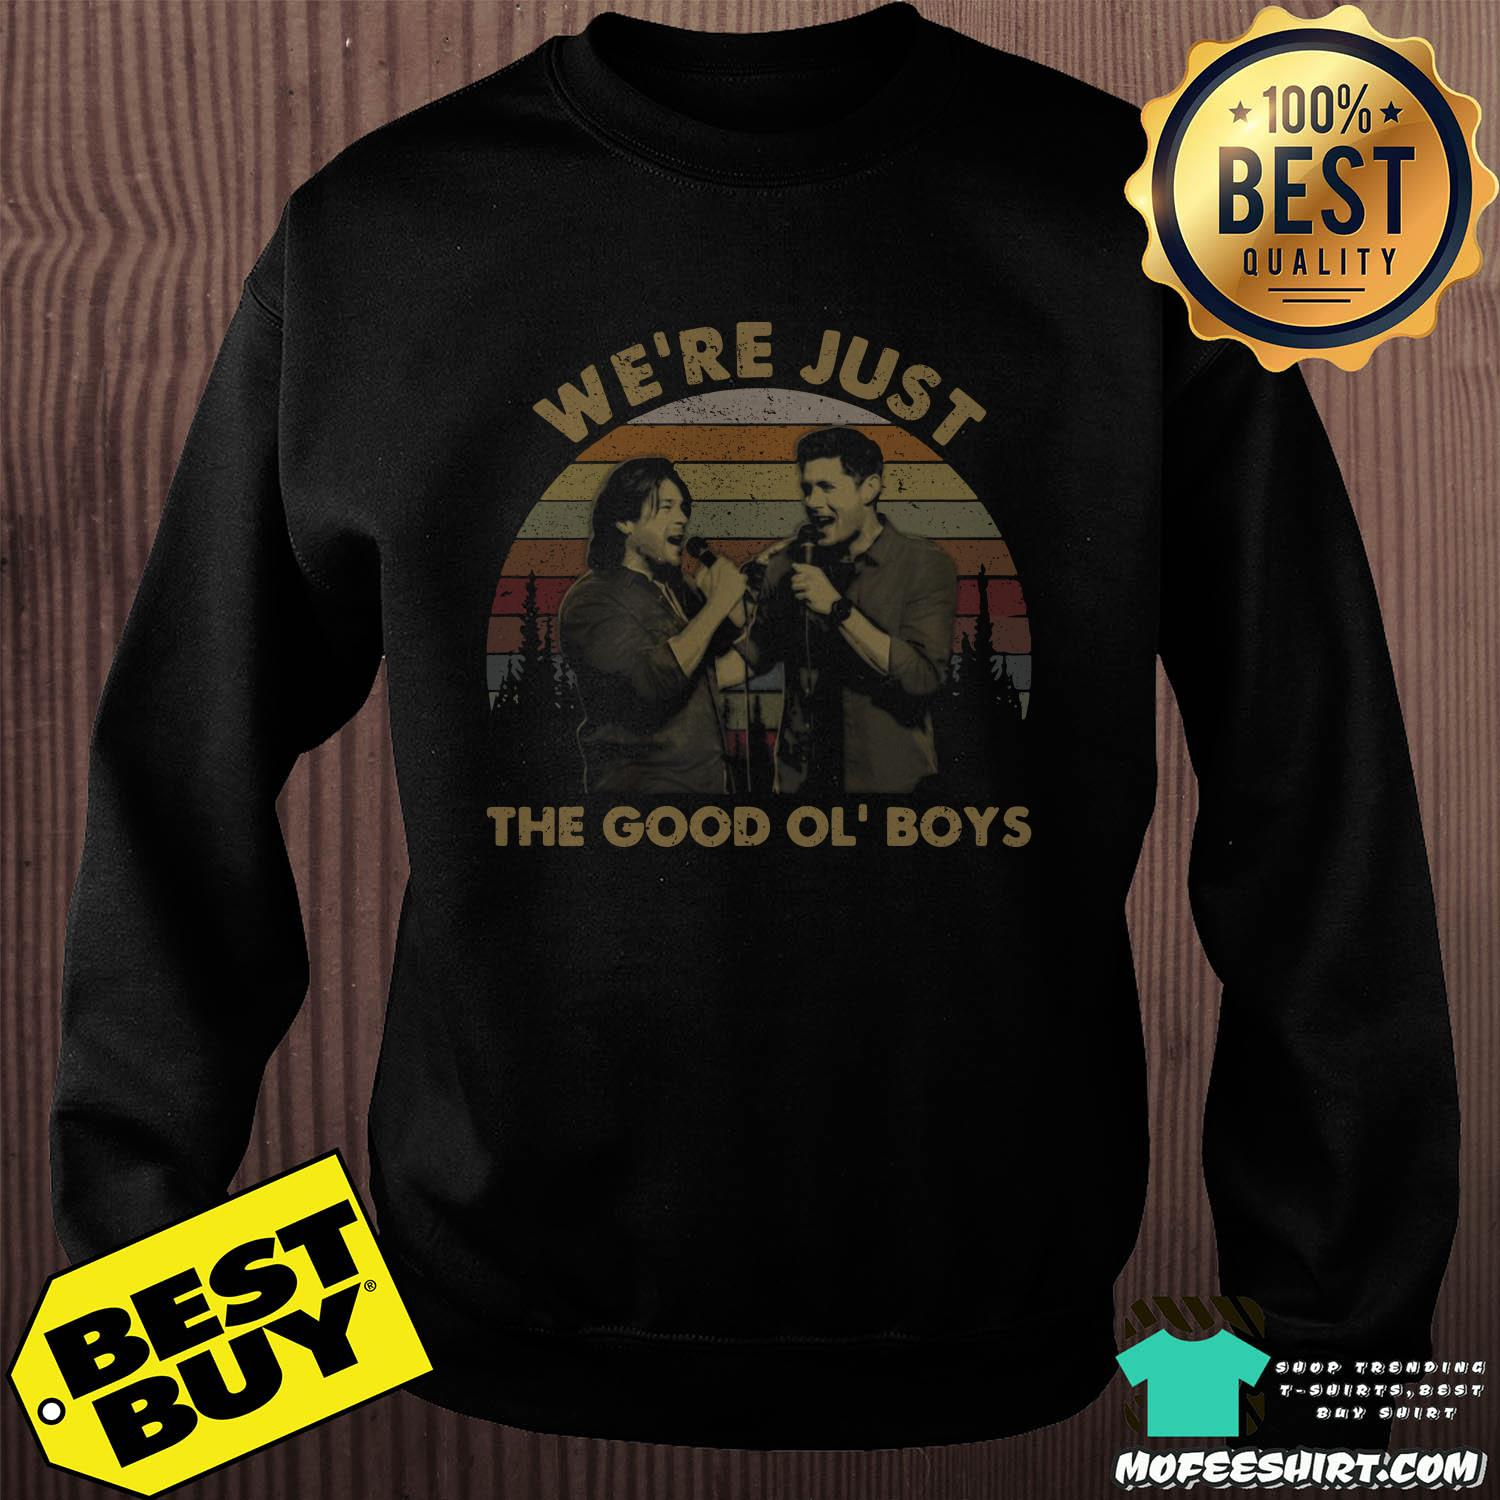 We're The Just Good Ol' Boys Vintage Shirt Sweater